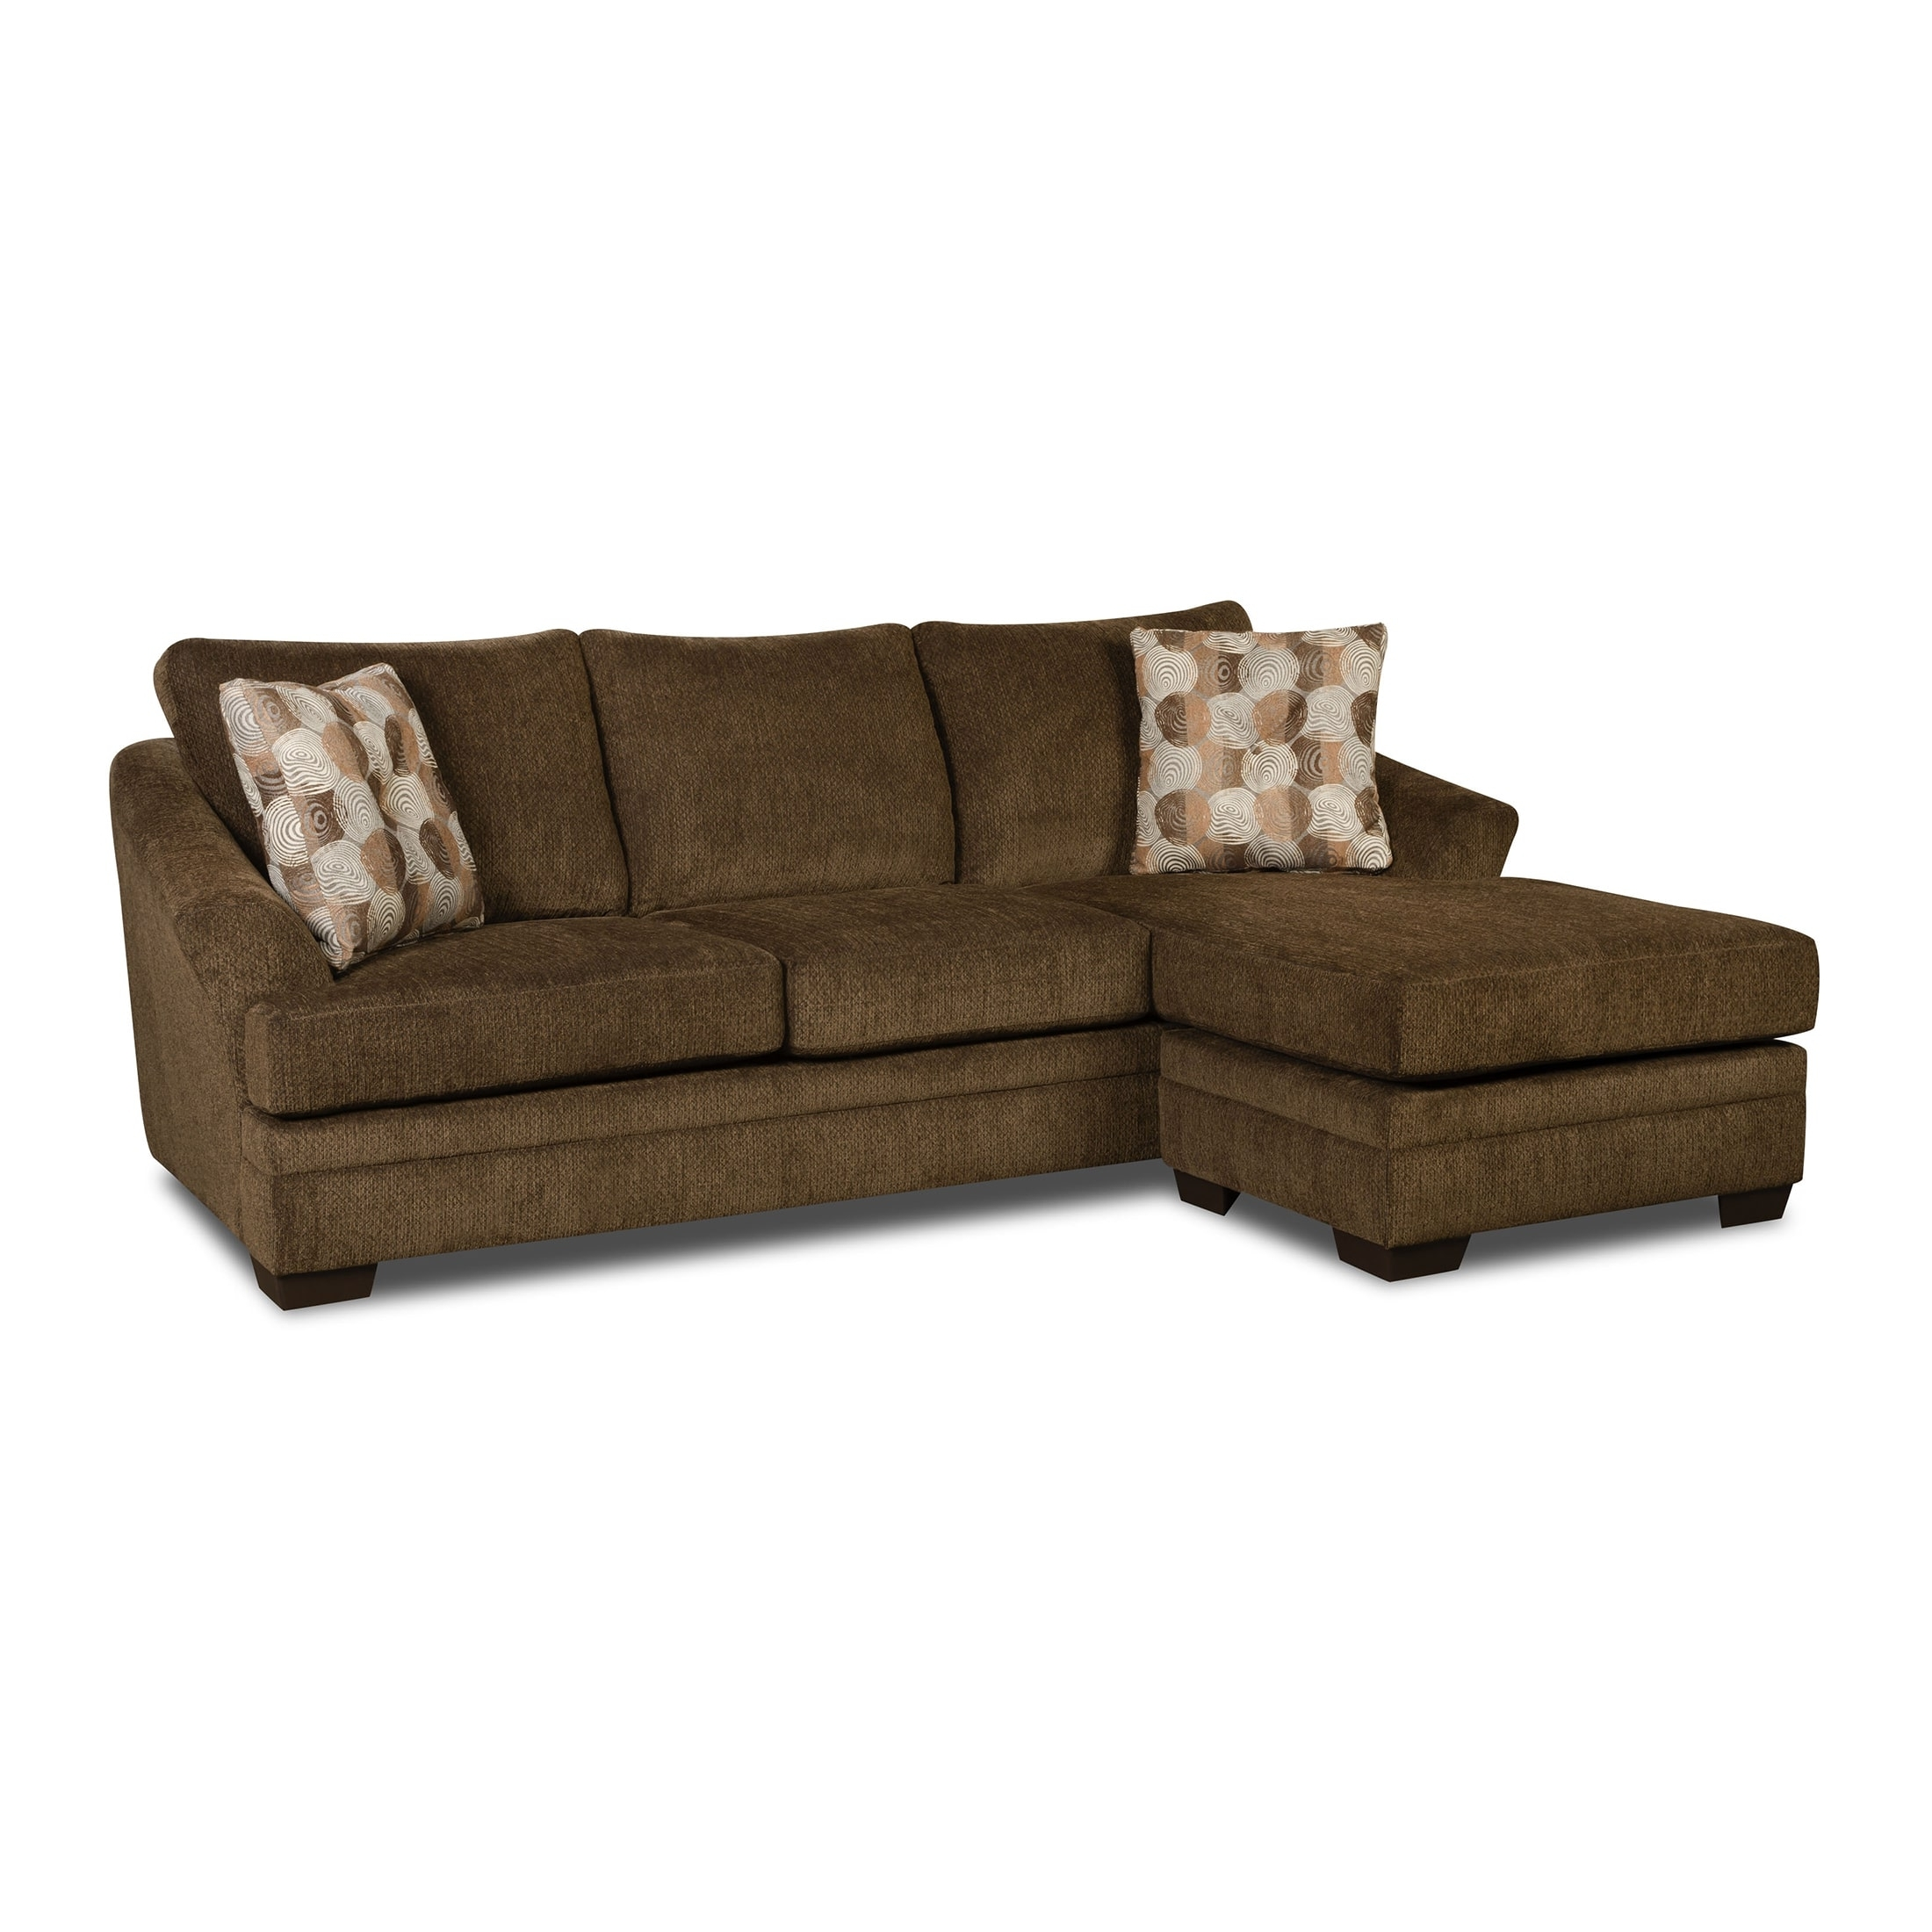 Simmons Upholstery Albany Sofa Chaise – Walmart Throughout Fashionable Simmons Chaise Sofas (View 14 of 20)